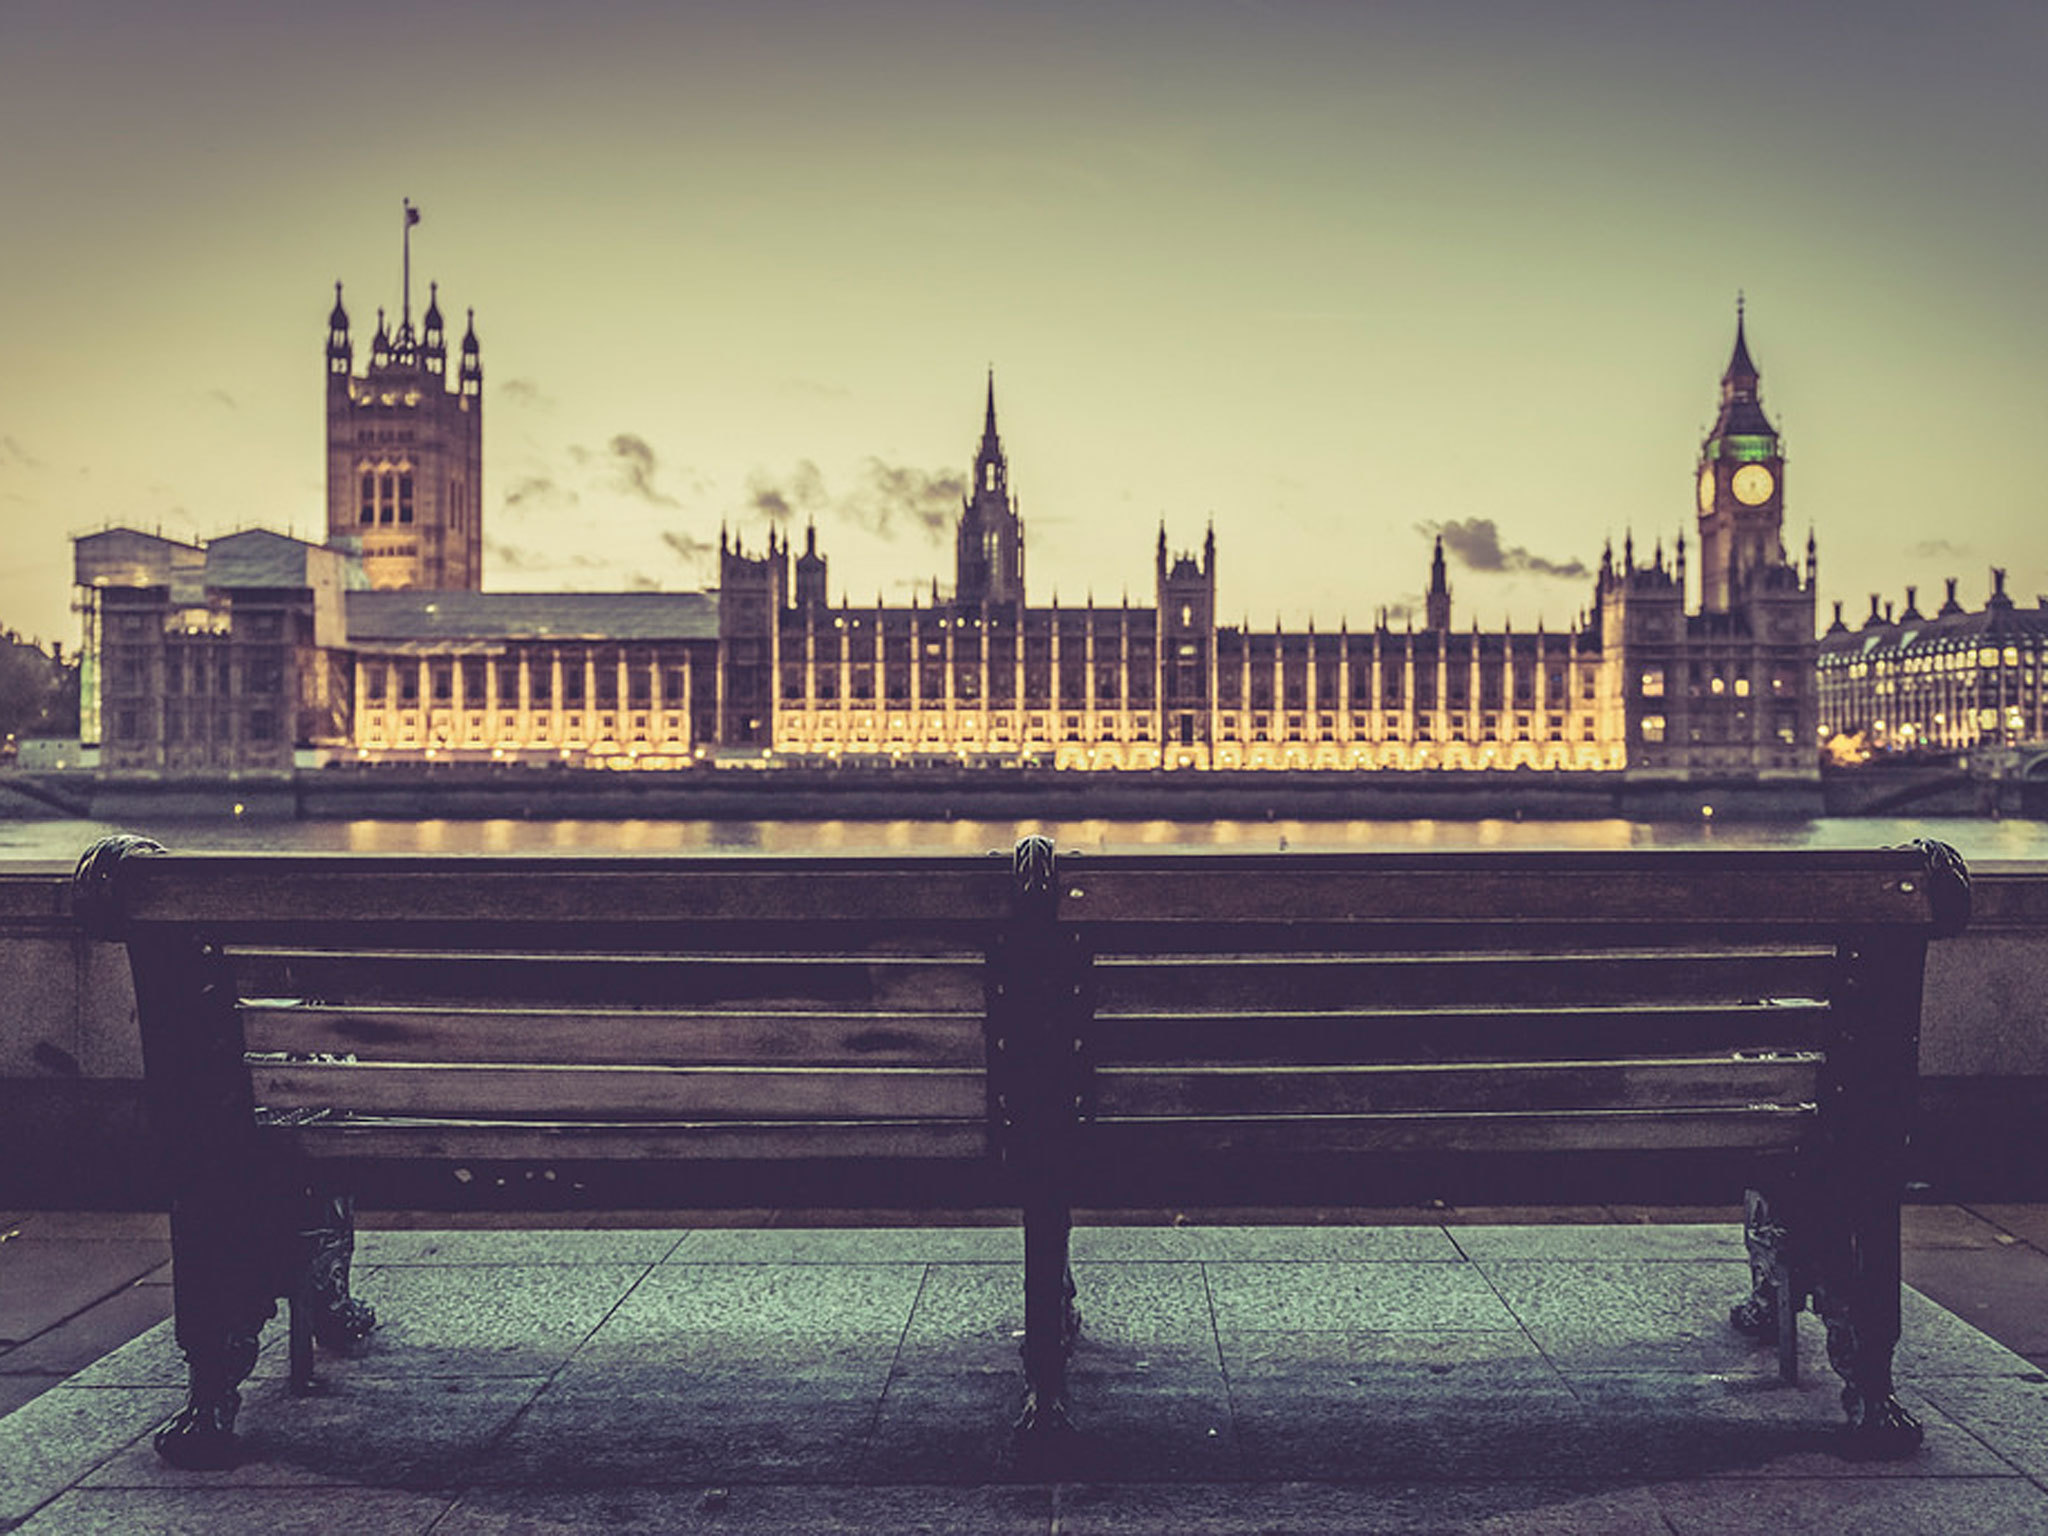 Parliament at dusk in London